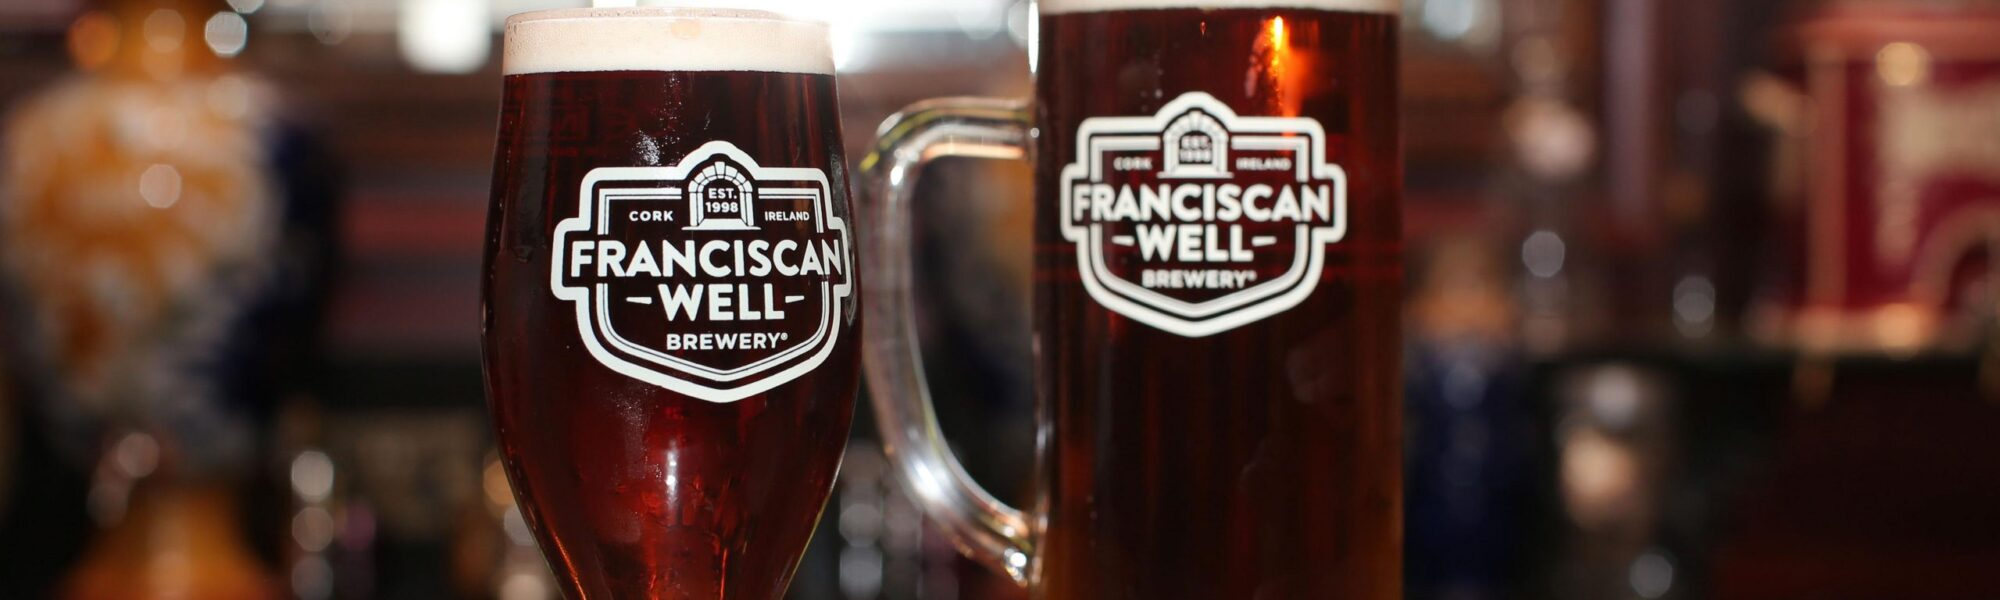 Franciscan Well Brewery Beers - http://www.duffyrafferty.com